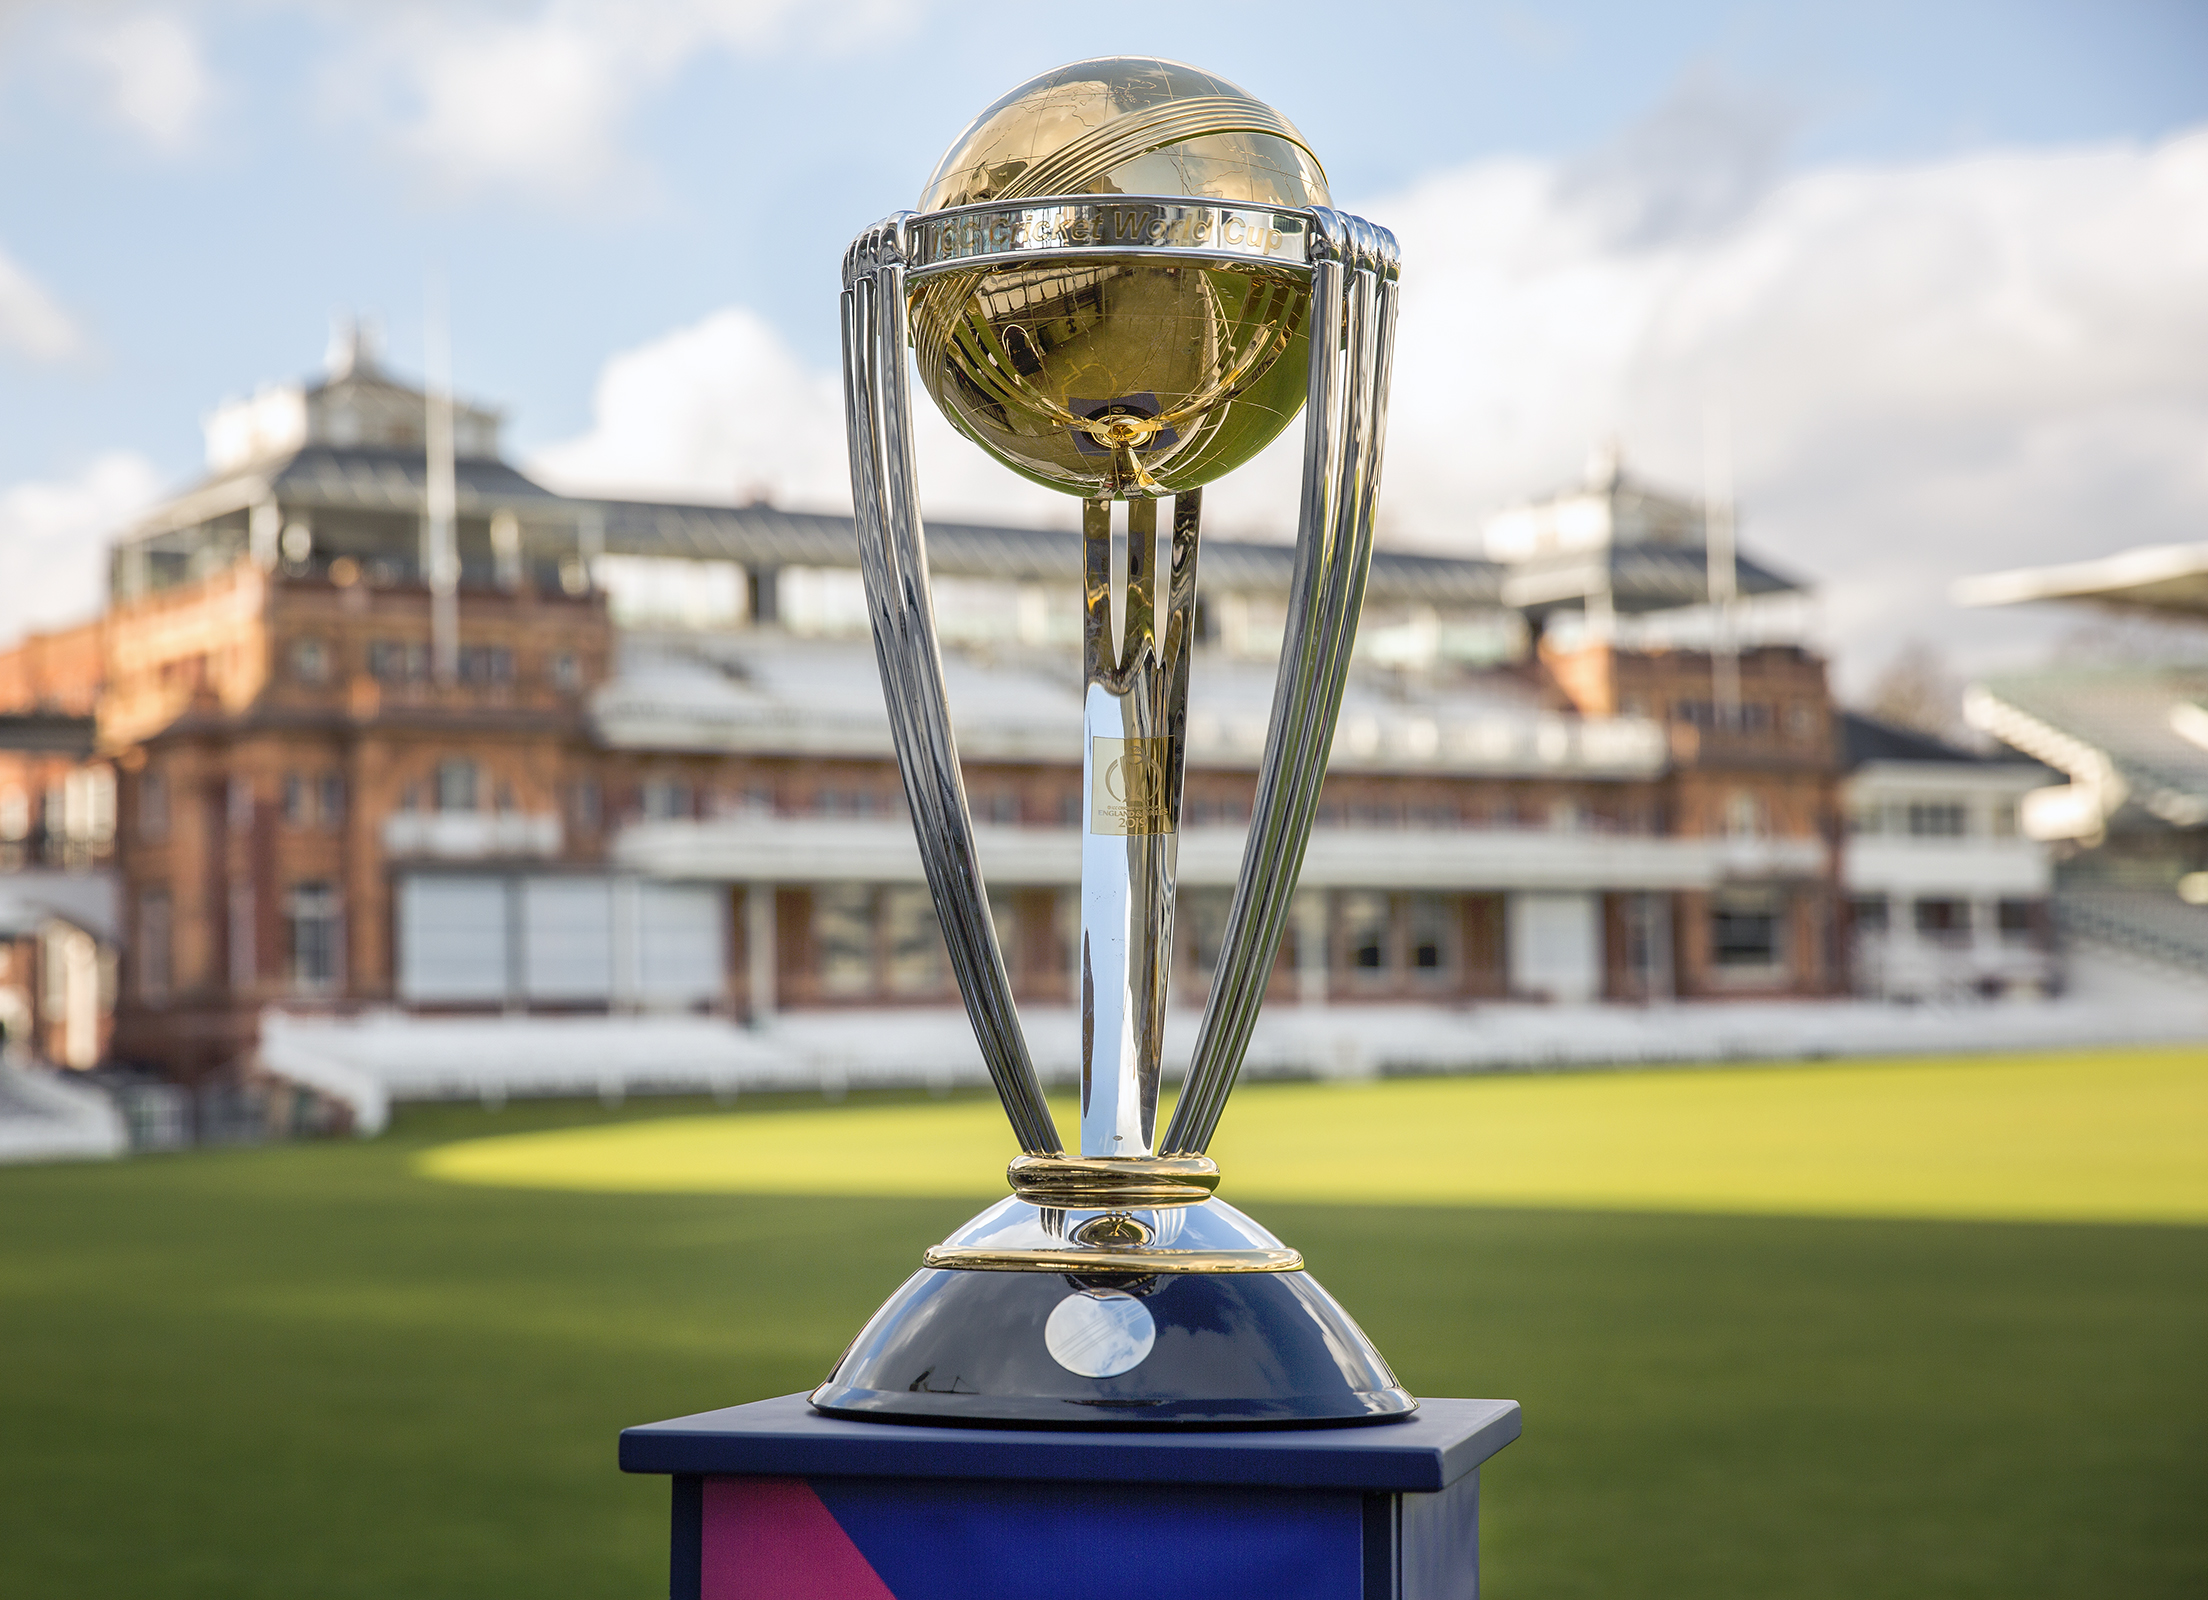 ICC Men's Cricket World Cup 2019 set to boost Manchester economy